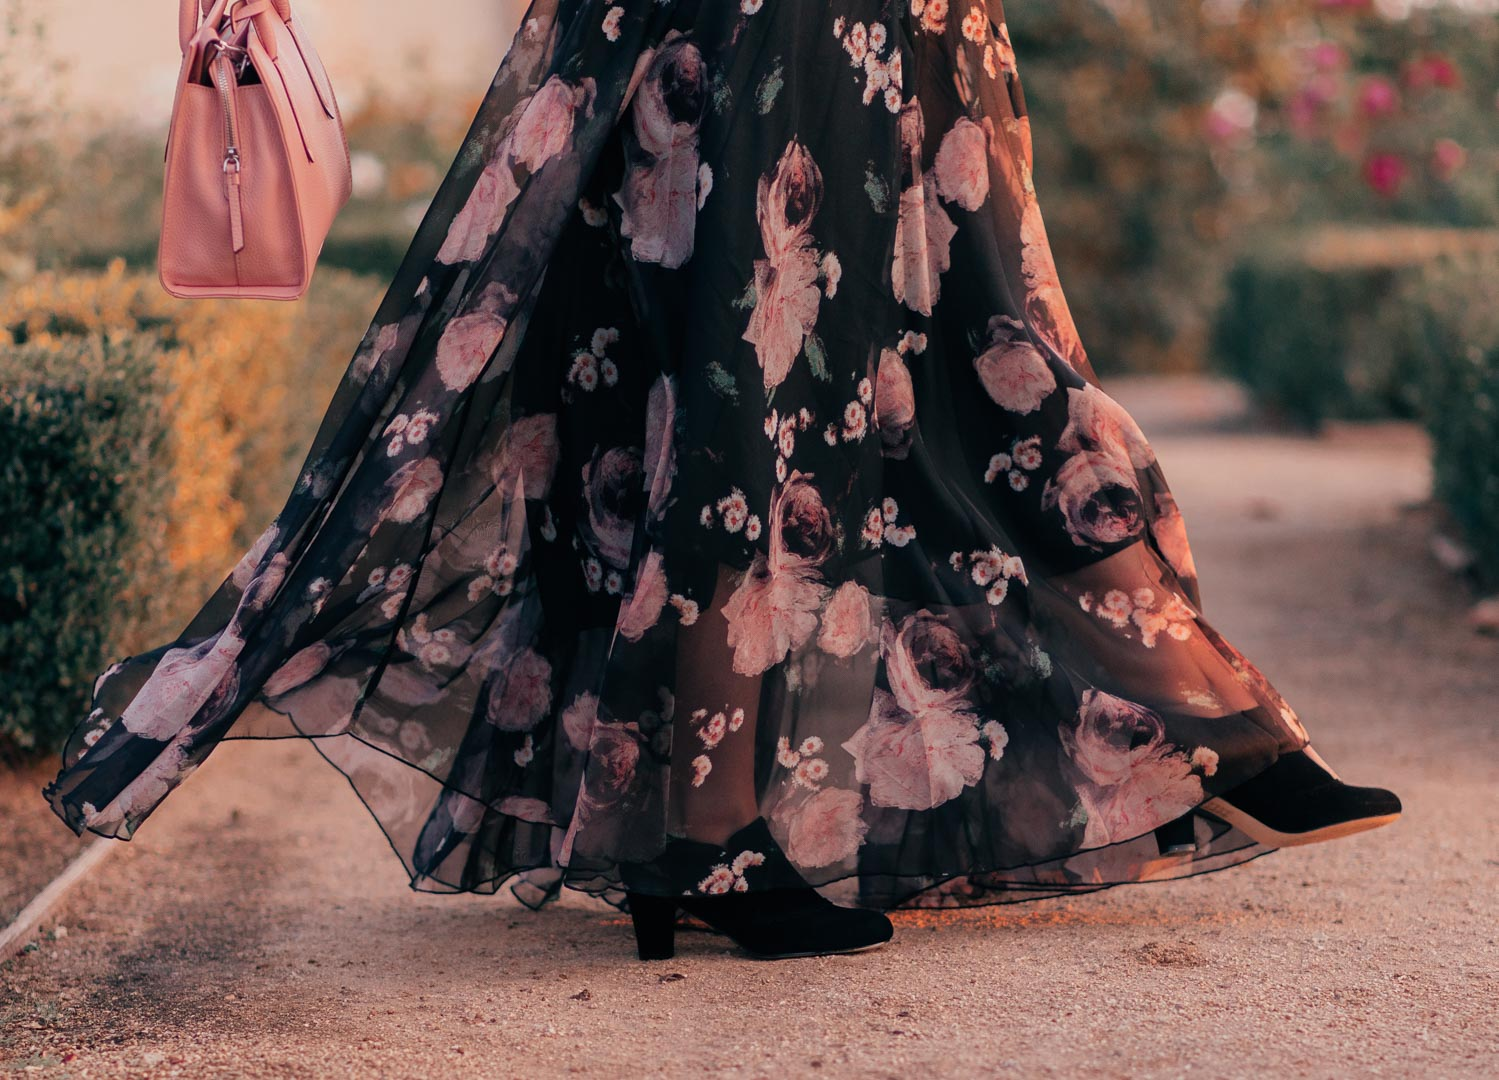 Fashion Blogger Elizabeth Hugen of Lizzie in Lace shares an aesthetic outfit idea with a black floral skirt and vintage inspired shoes for fall